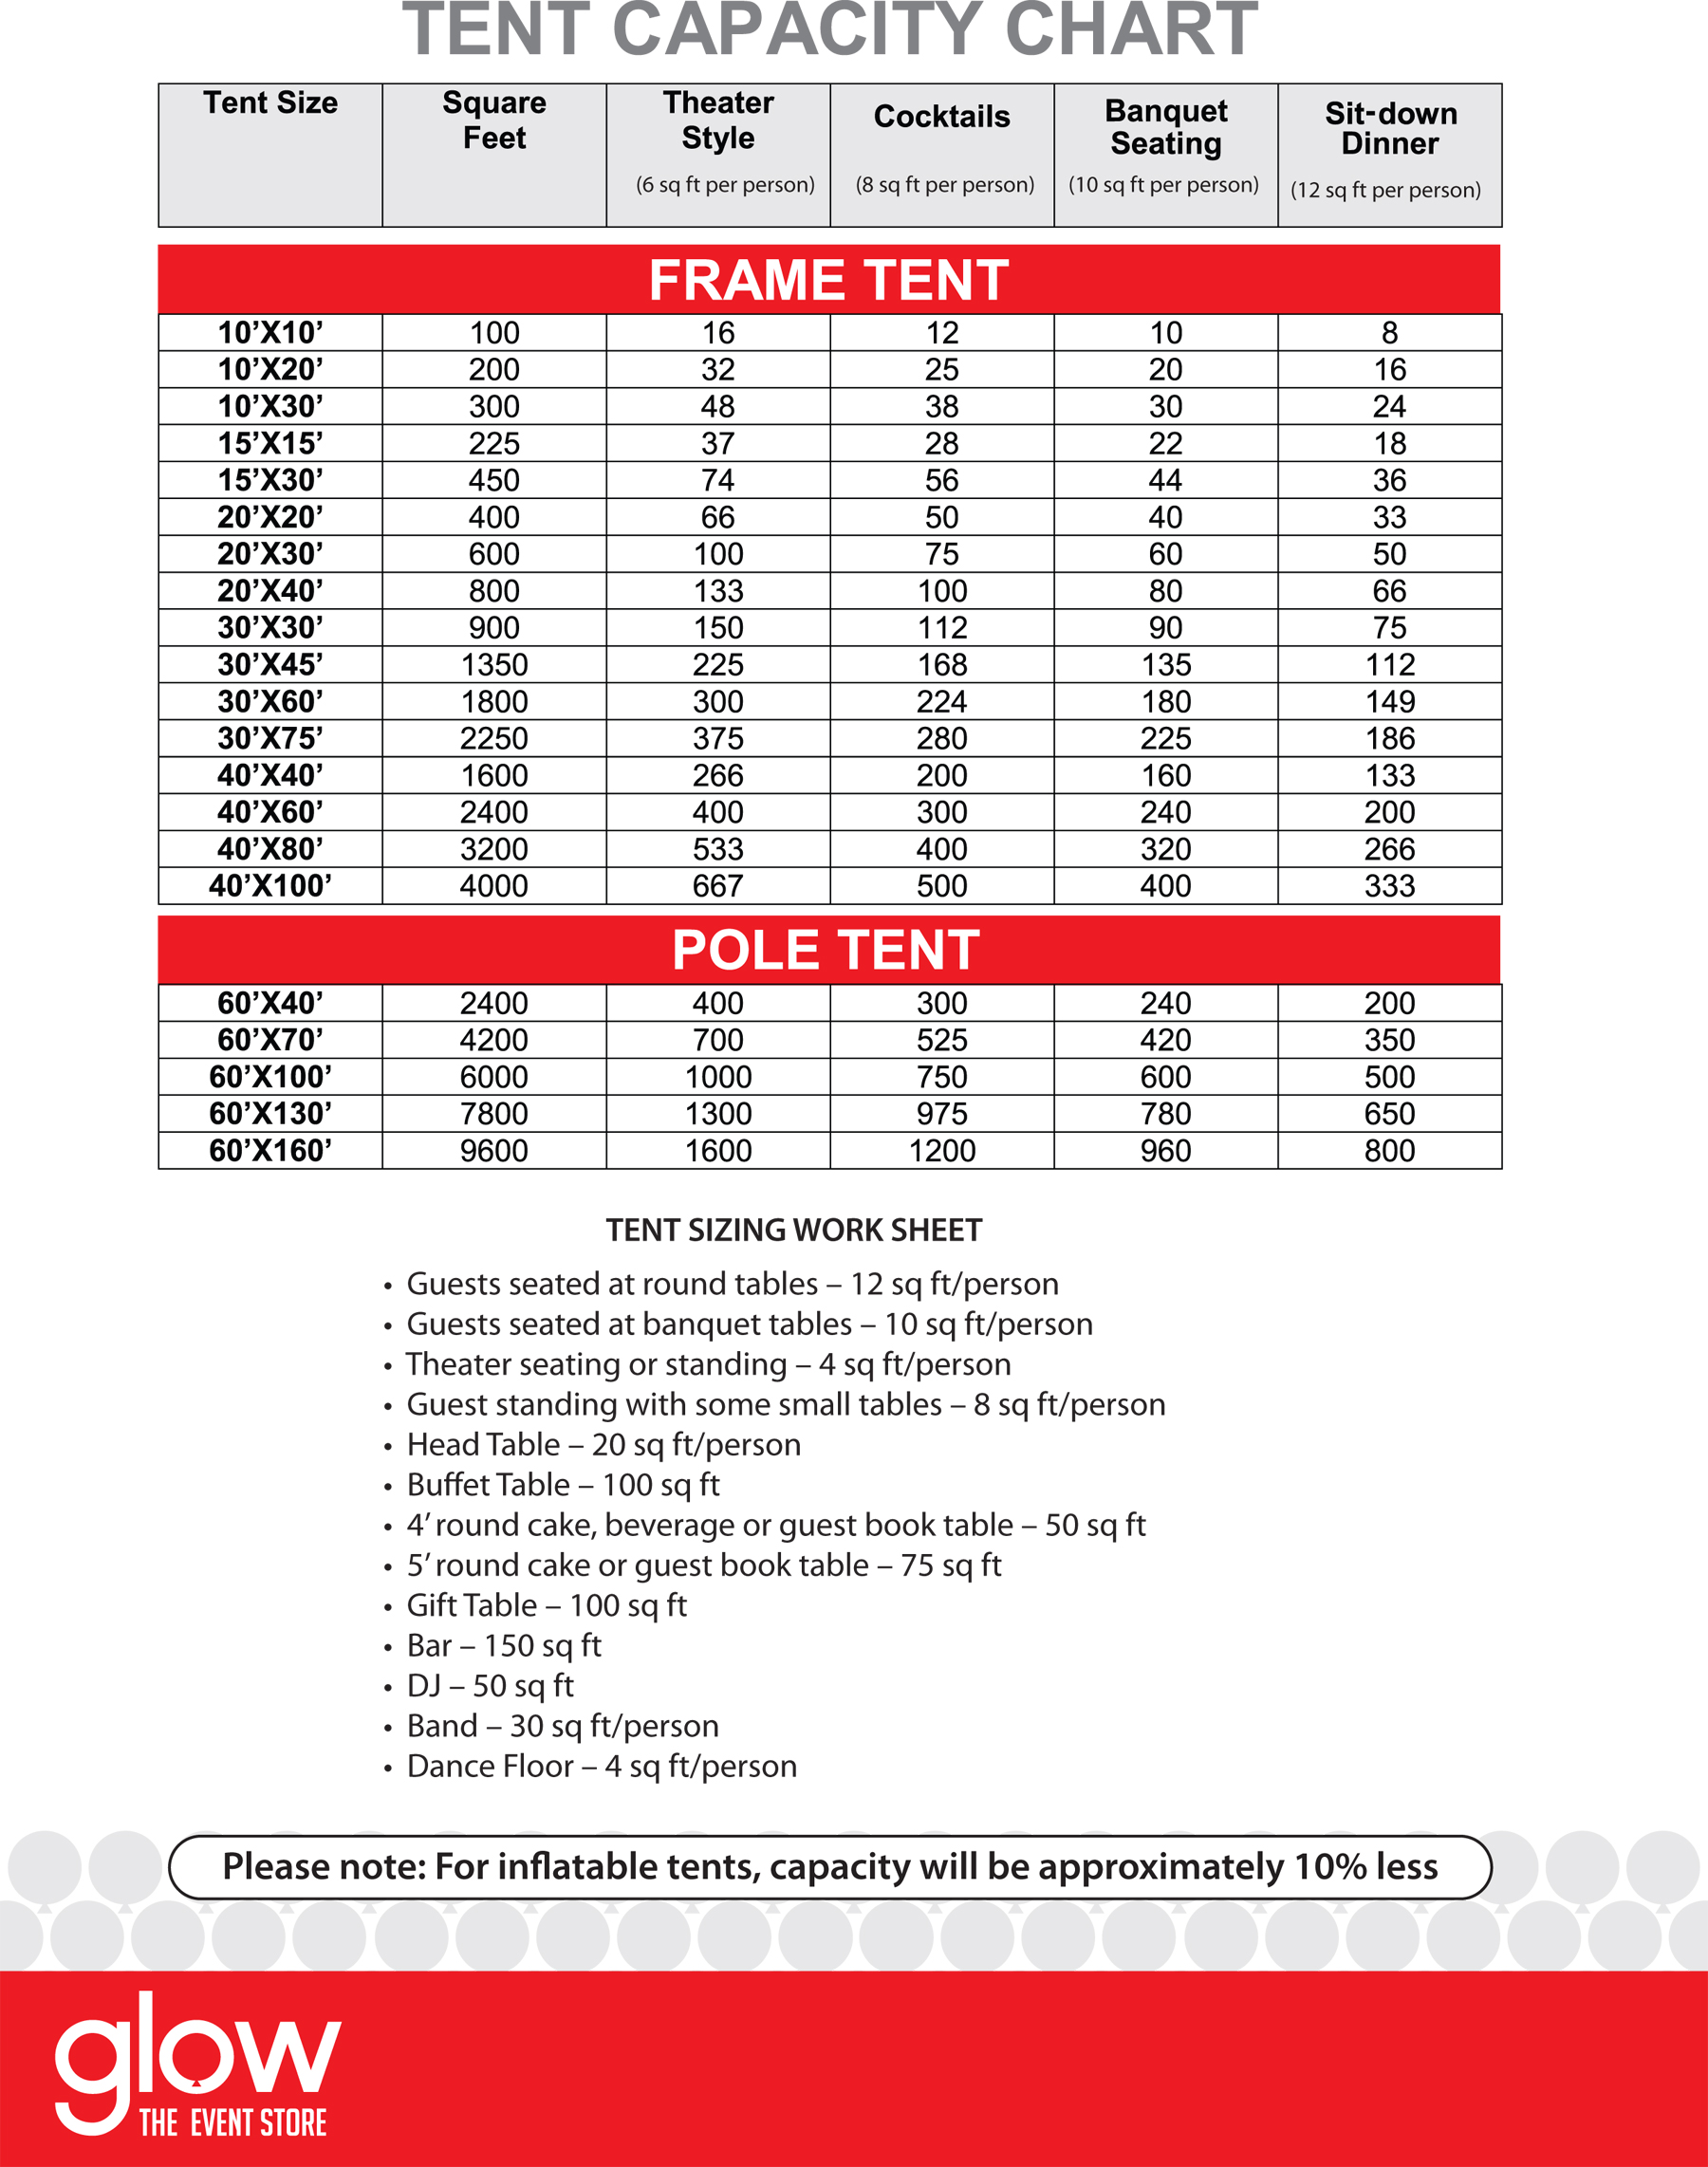 Glow The Event Store Tent Capacity Chart Glow The